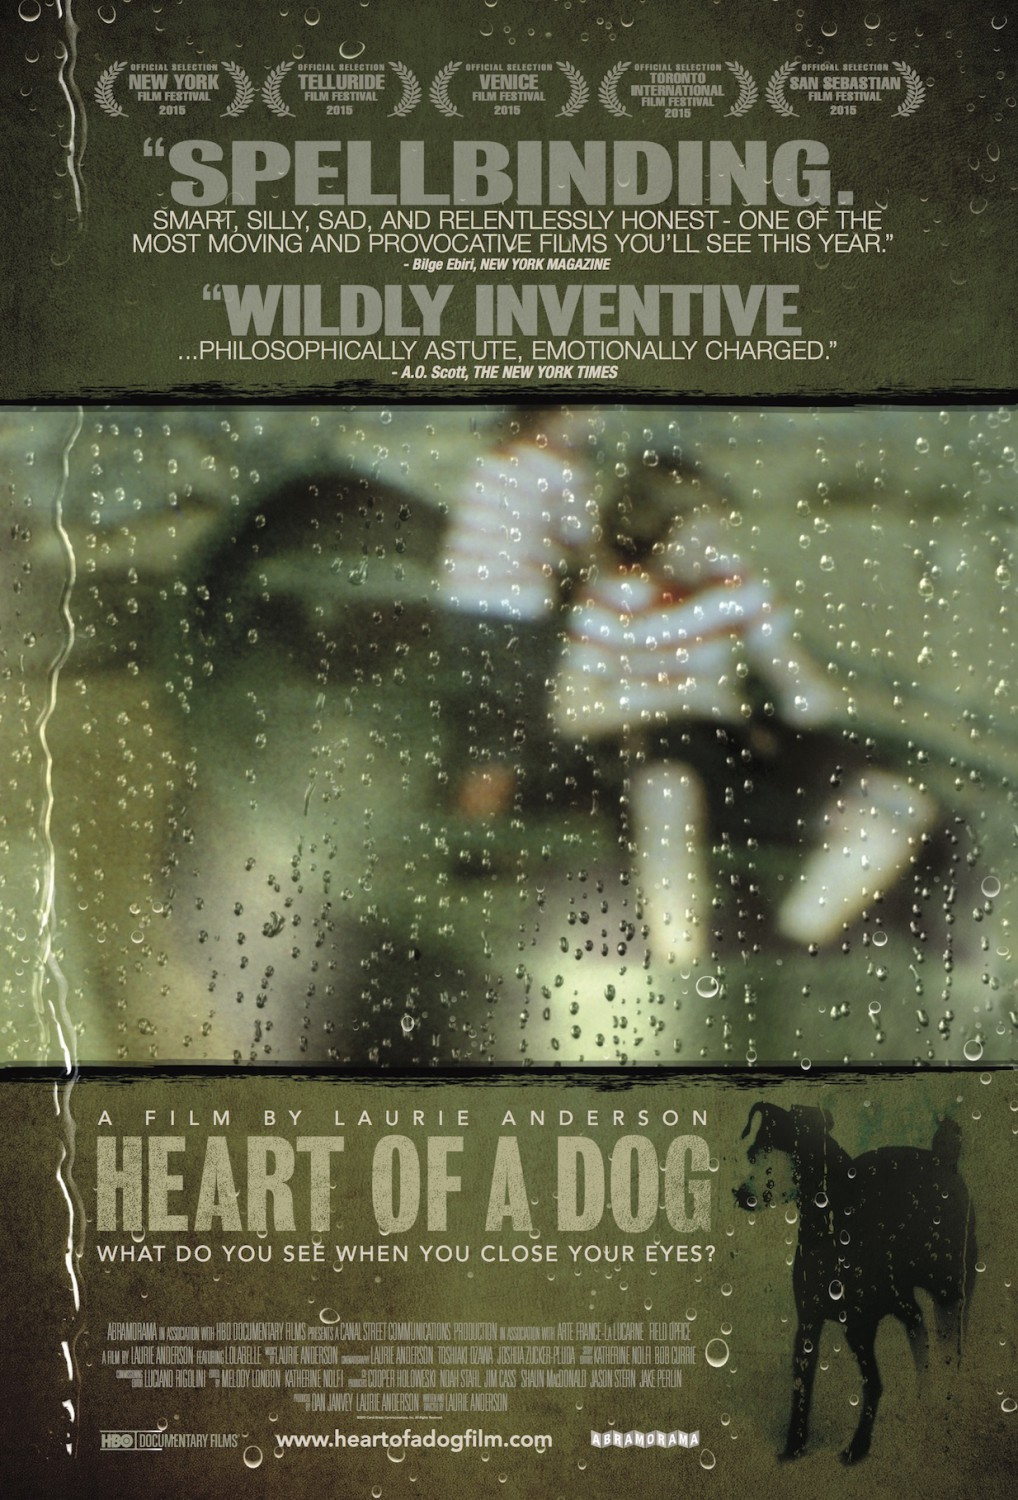 Prodigious A Dog Movie Poster Heart A Dog Movie Poster Imp Awards Sad Dog Movies 2017 Sad Dog Movies To Watch On Netflix Or Heart bark post Sad Dog Movies